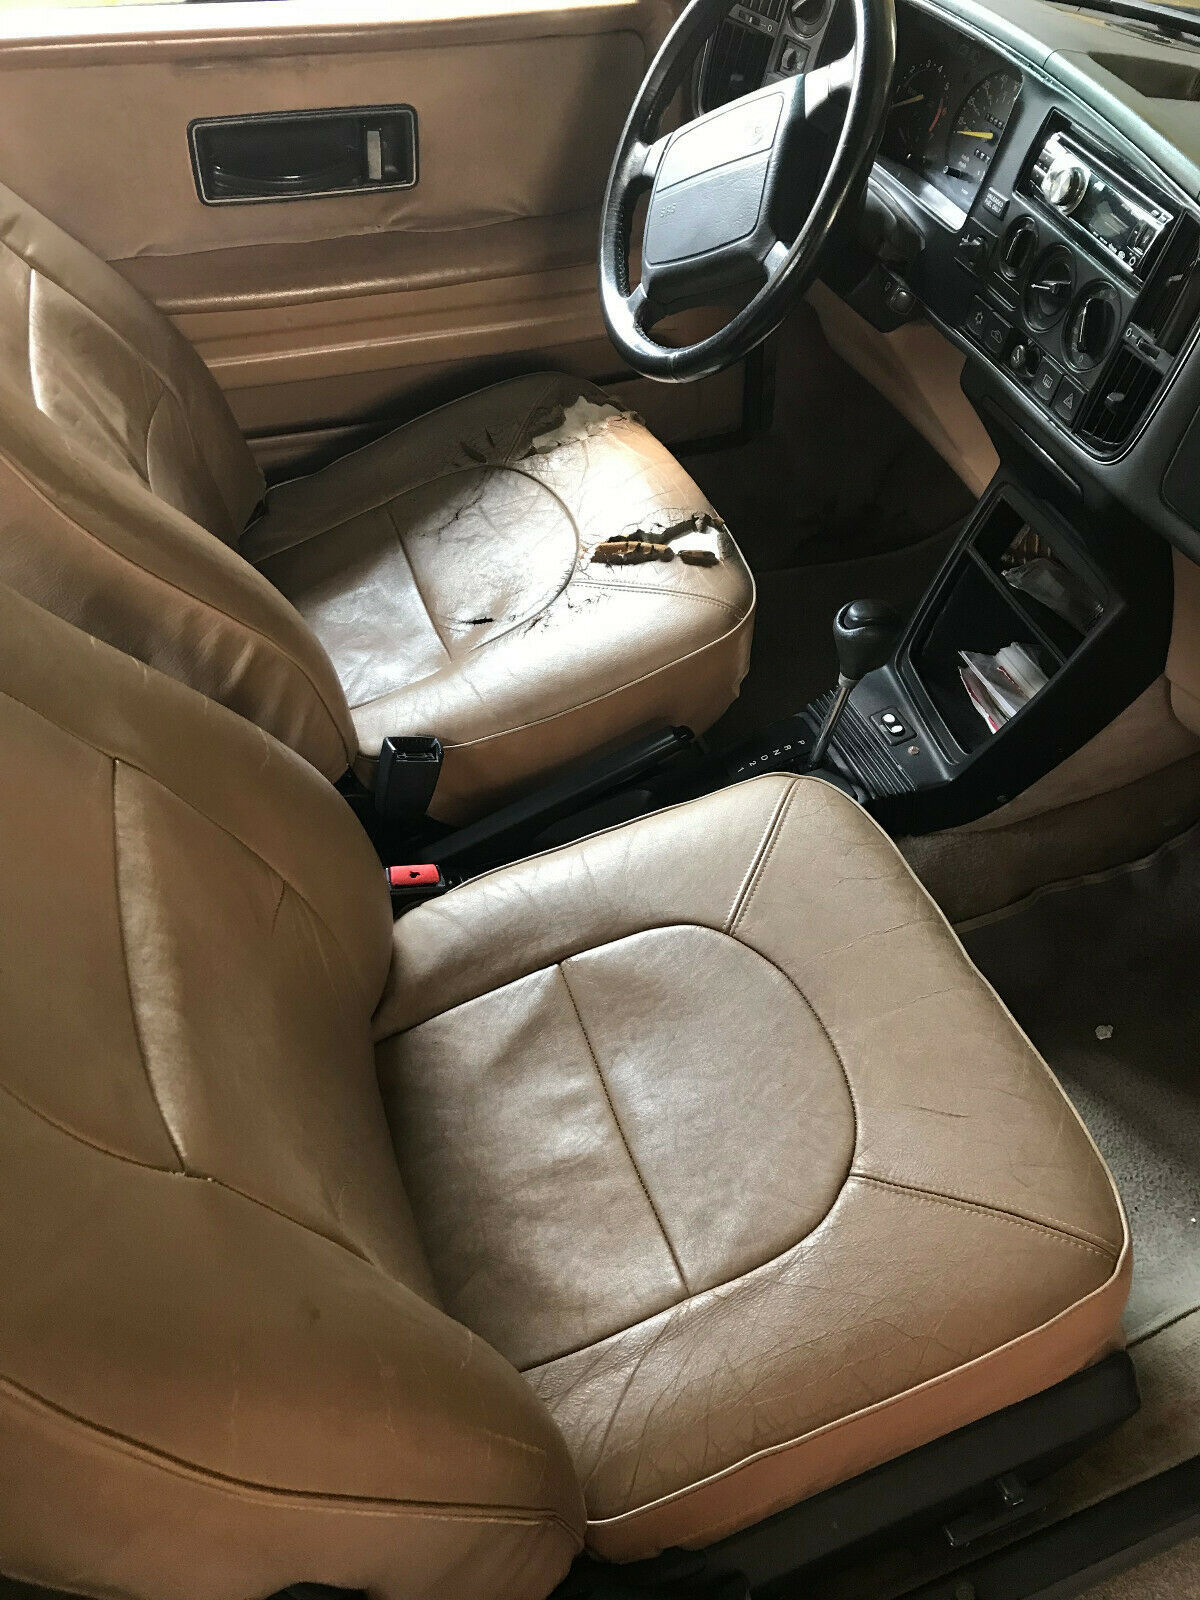 1991 Black Saab 900 Convertible with Tan interior